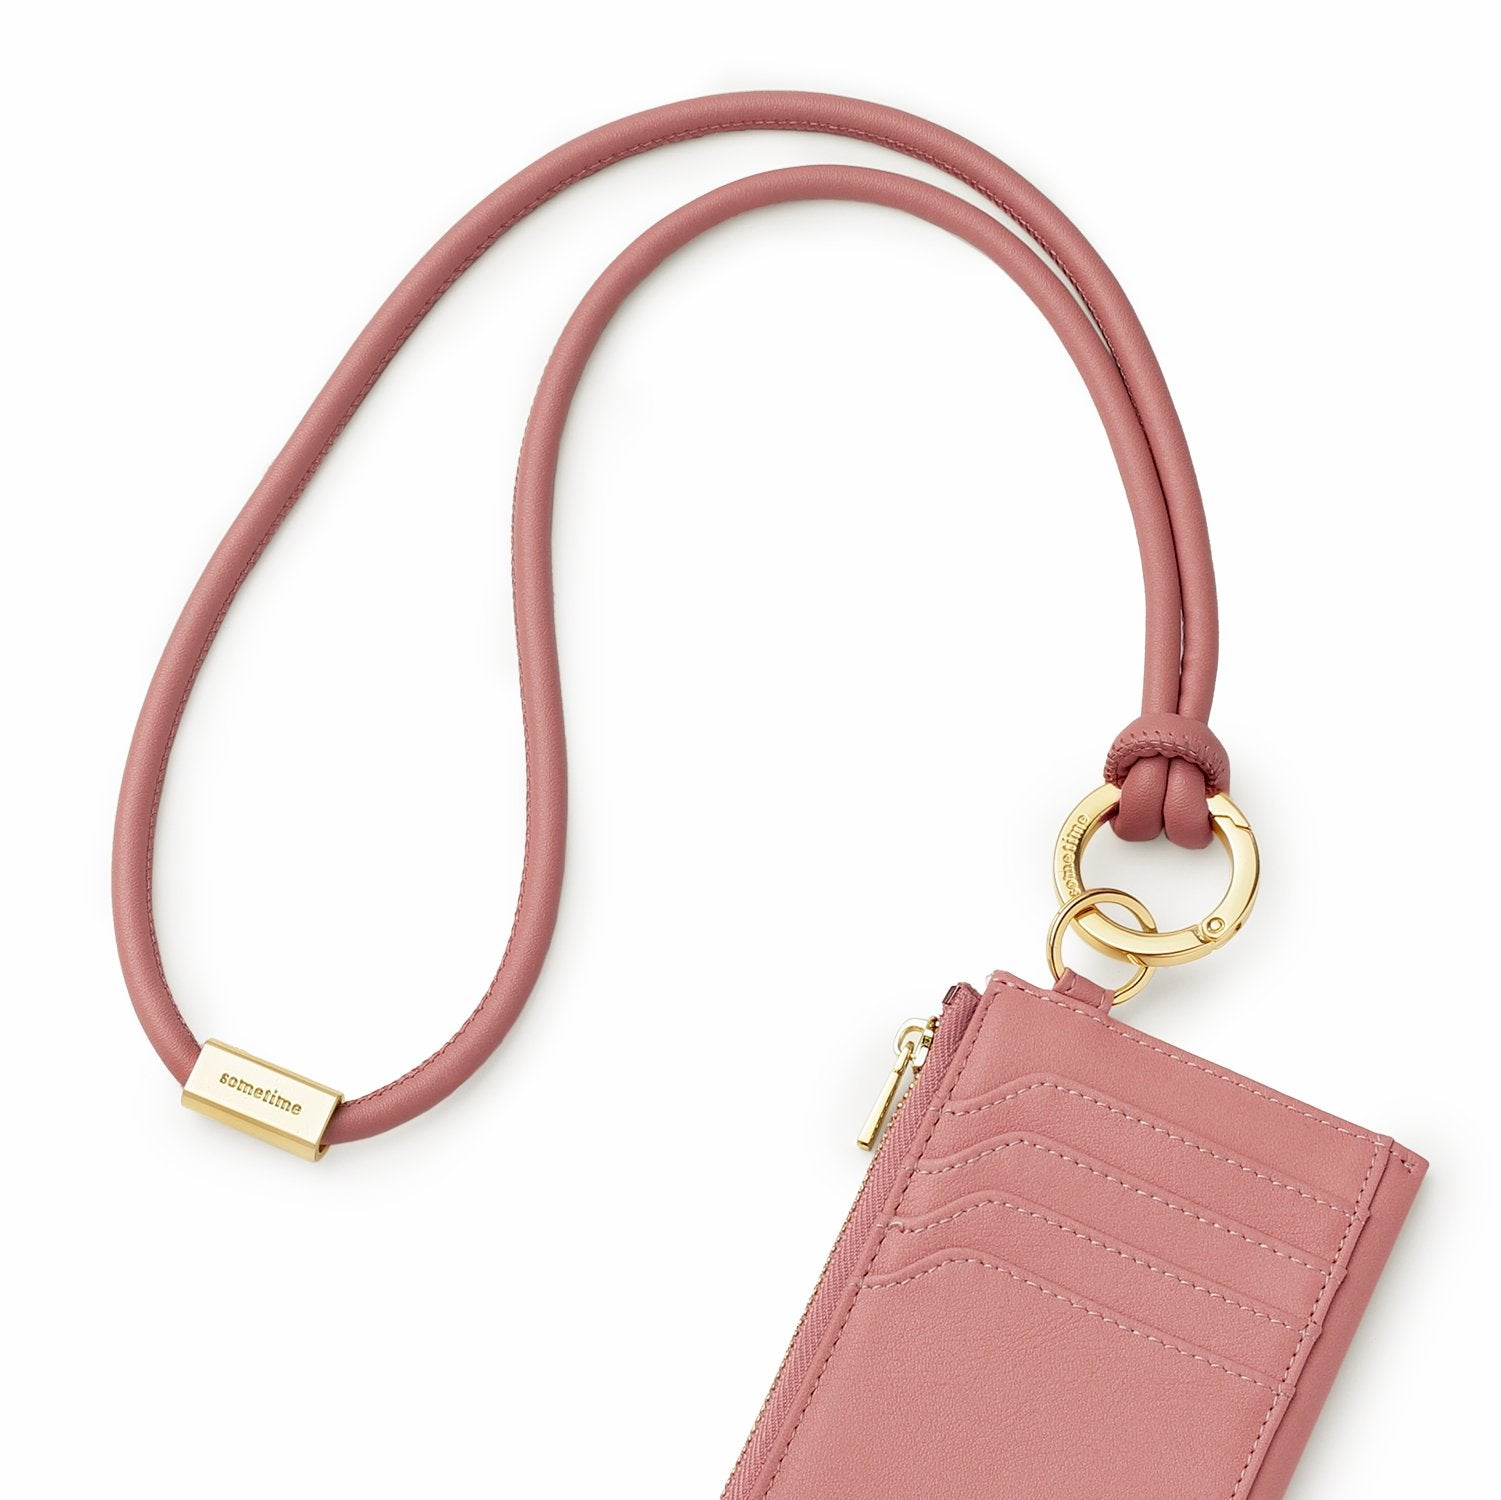 Estrap - Dusty Pink